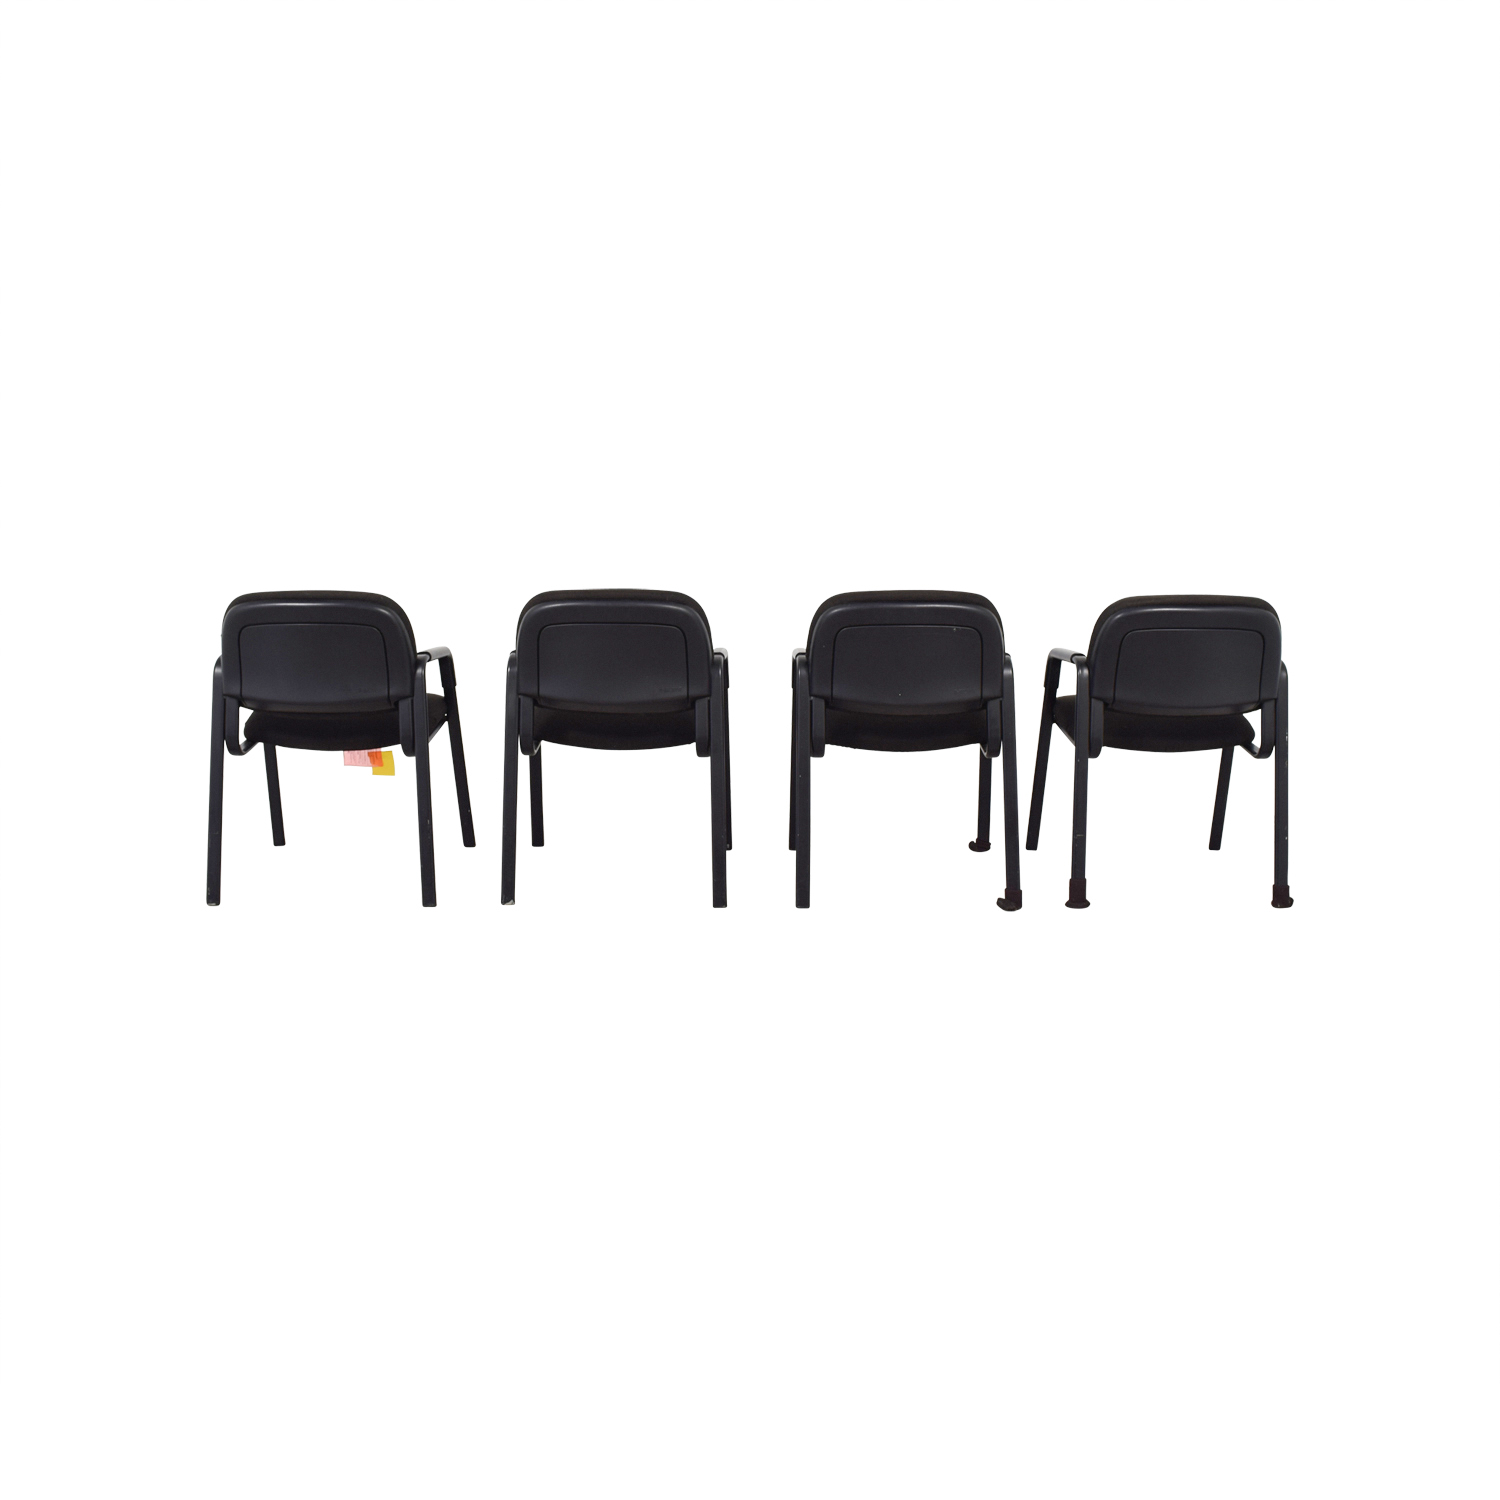 Black Office Chairs used